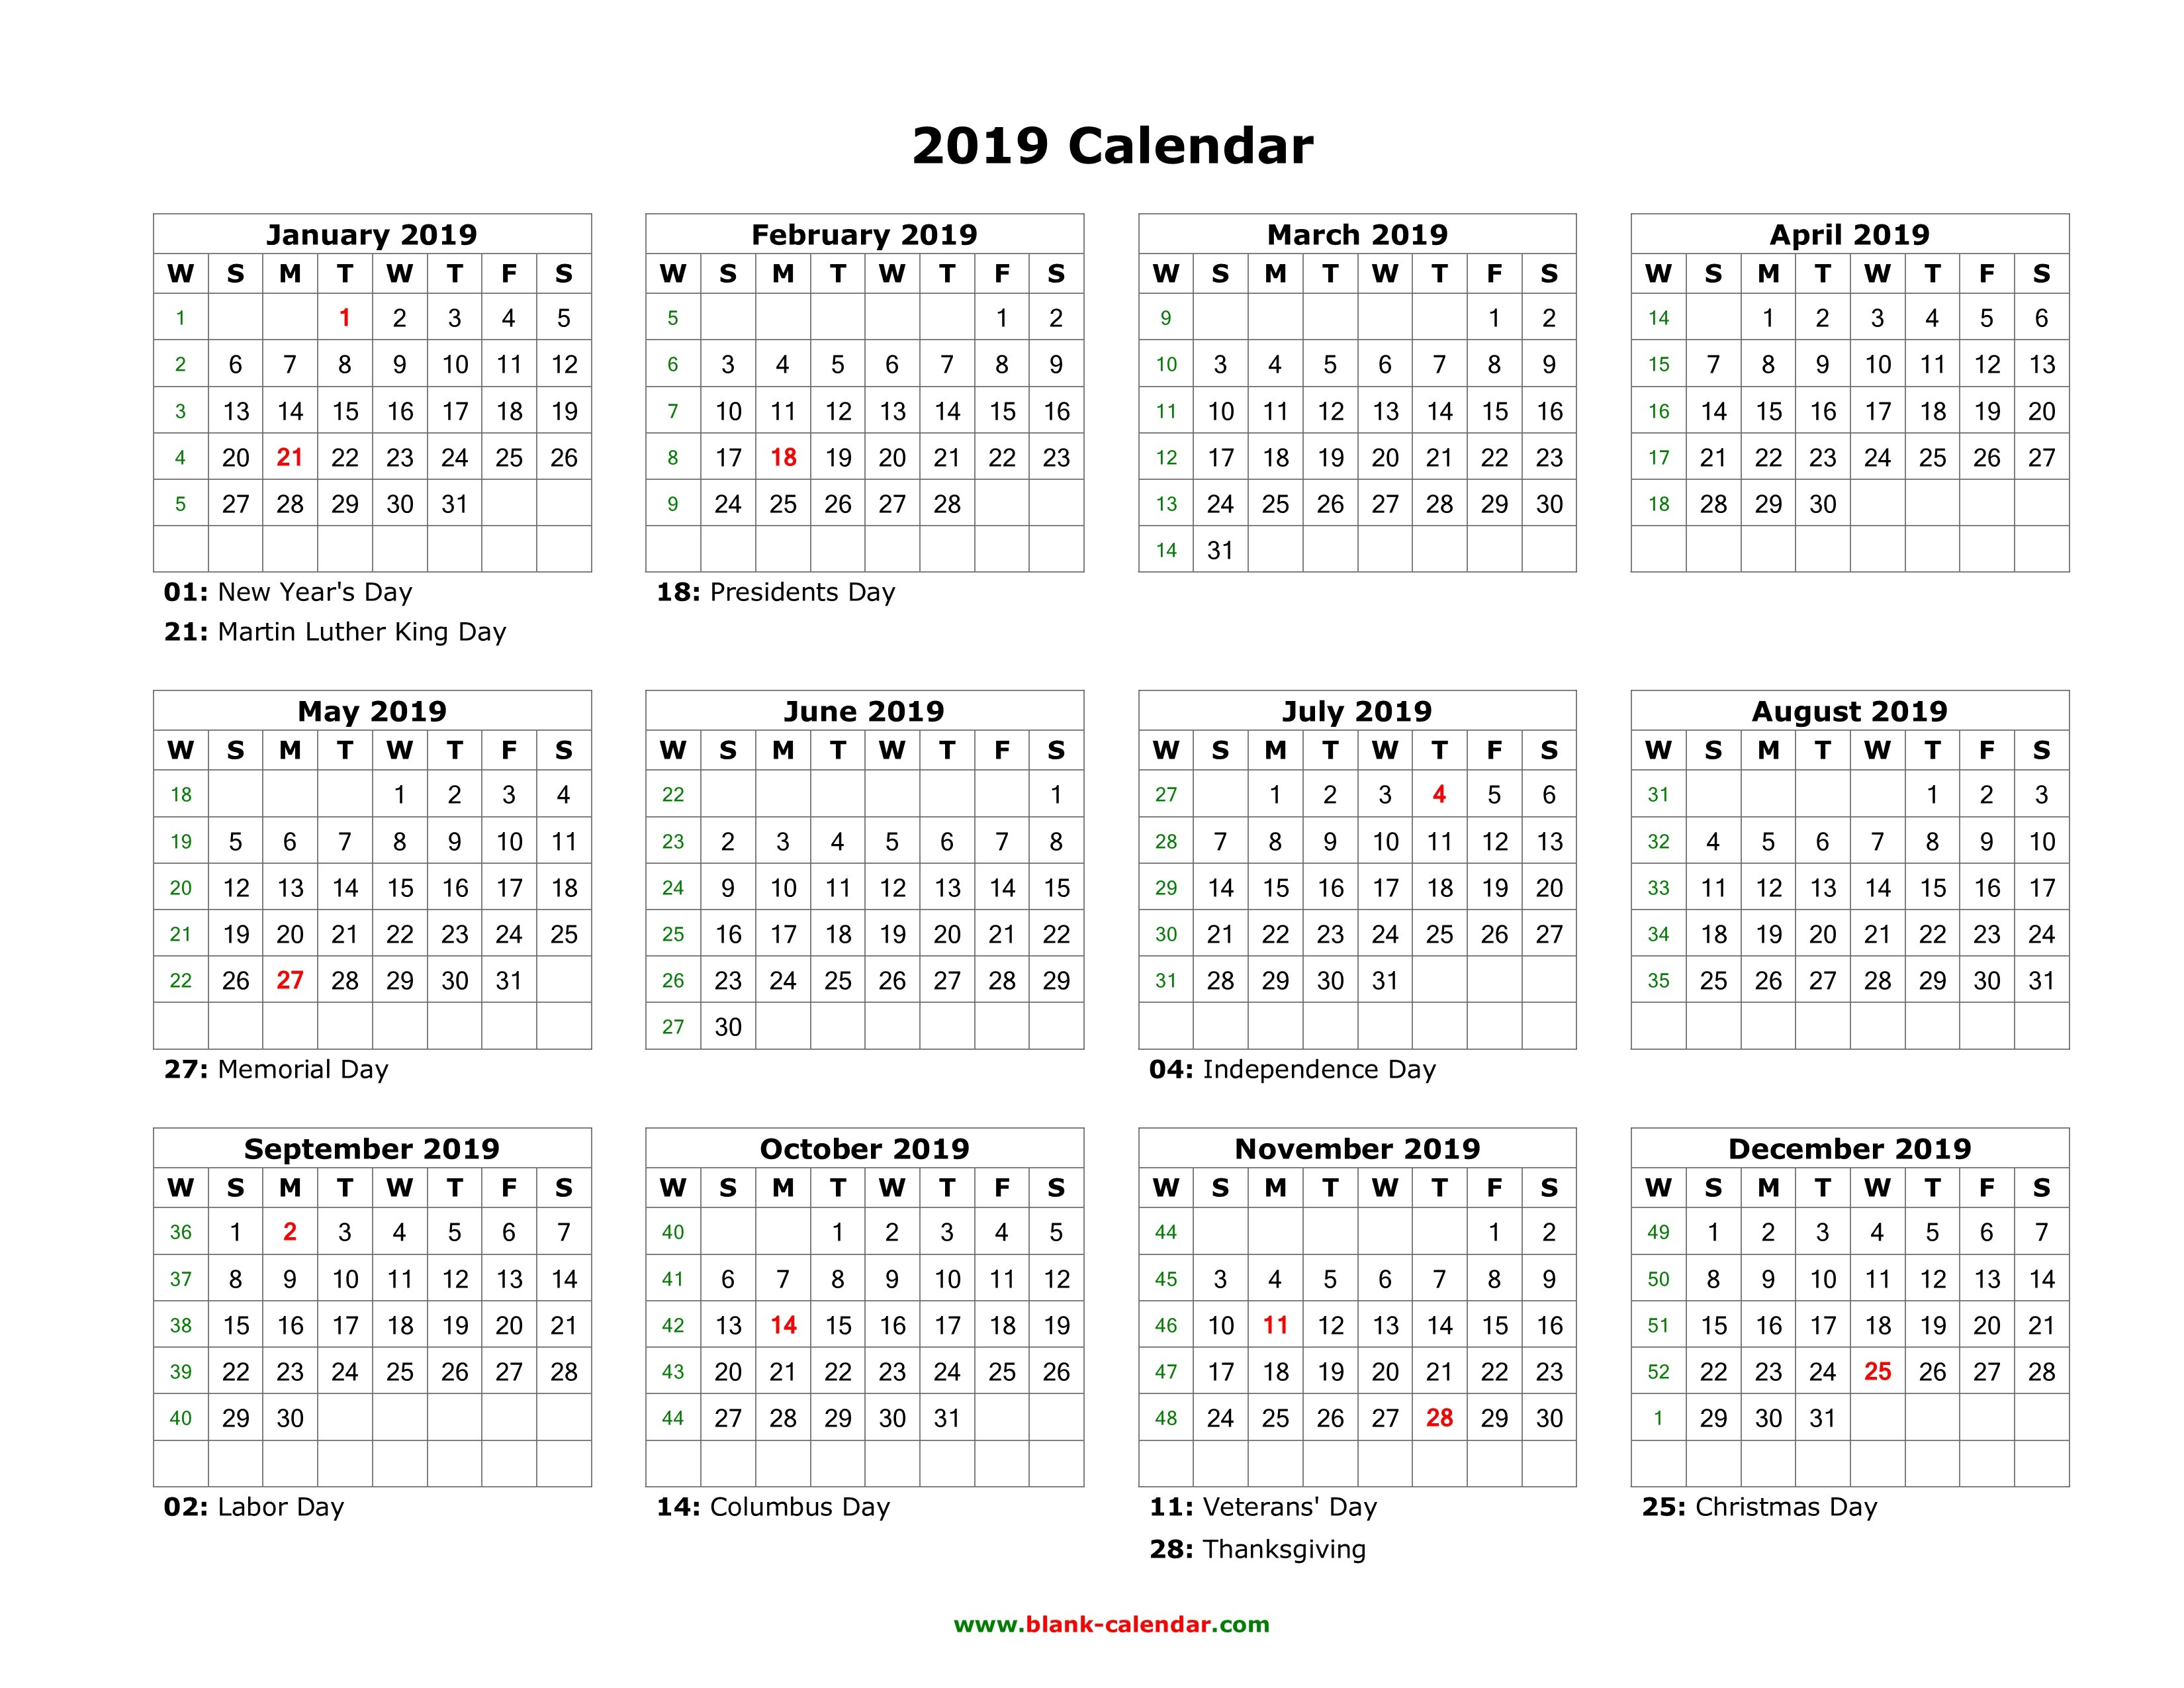 Blank Calendar 2019 | Free Download Calendar Templates Calendar 2019 Full Year